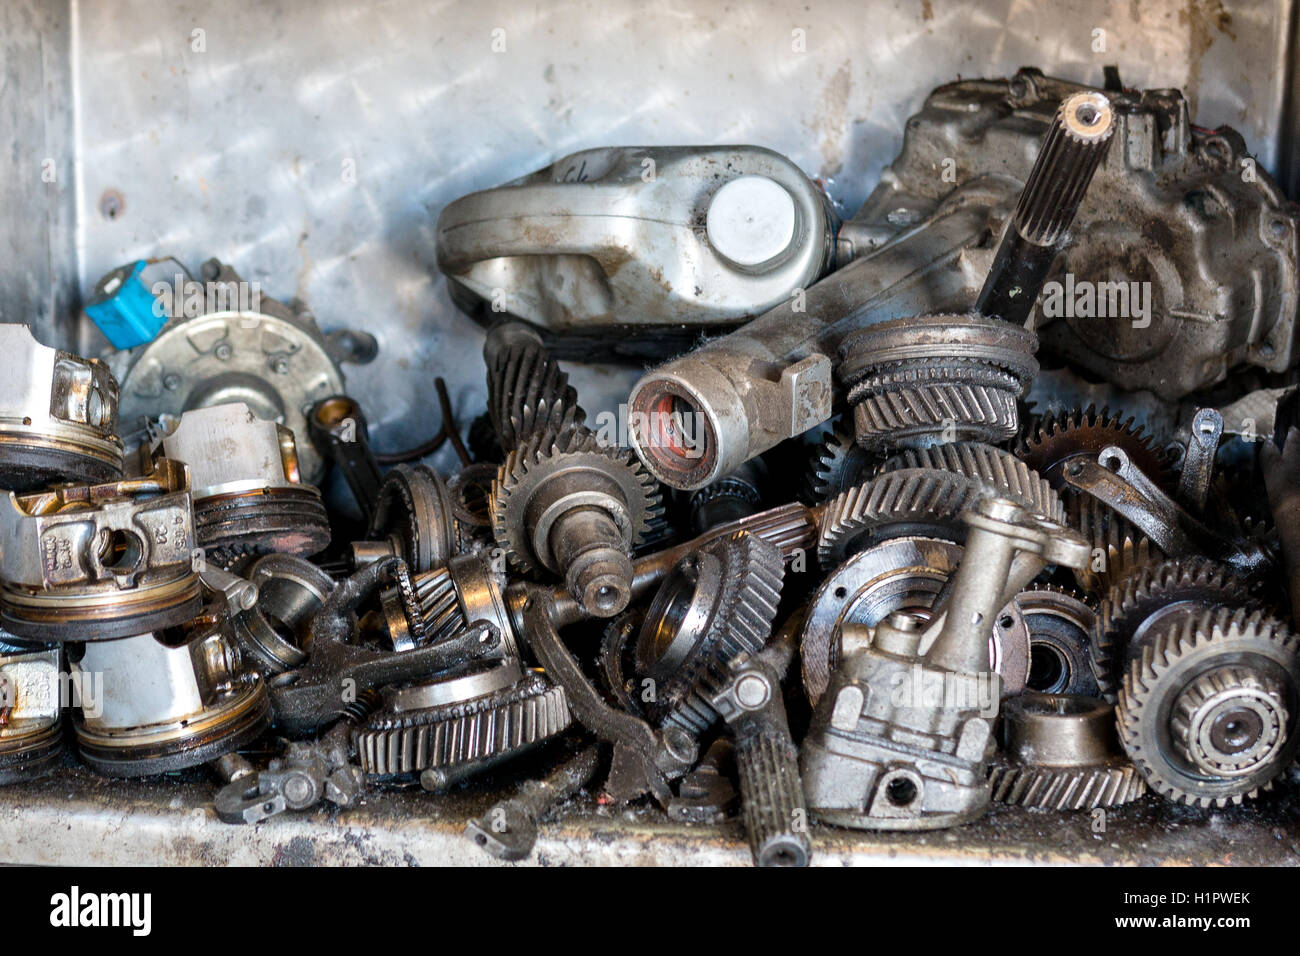 on the shelf are out of order old car engine parts Stock Photo ...